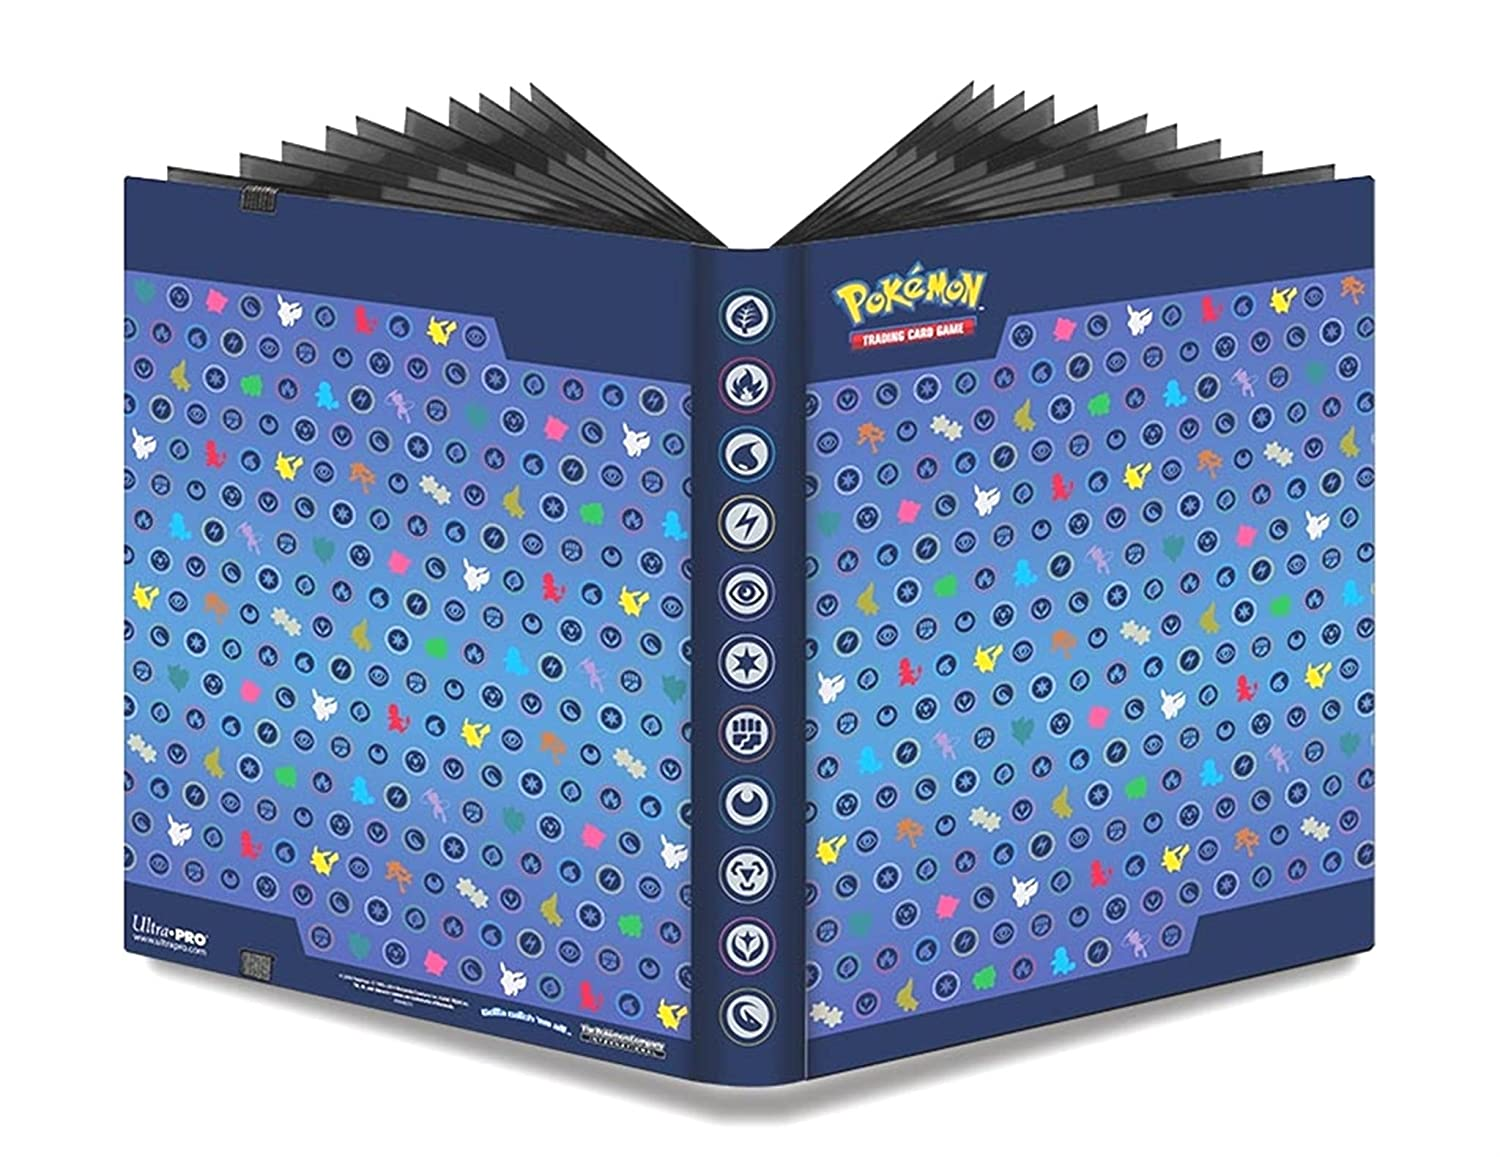 amazon 9 pocket pokemon full view pro binder silhouettes album